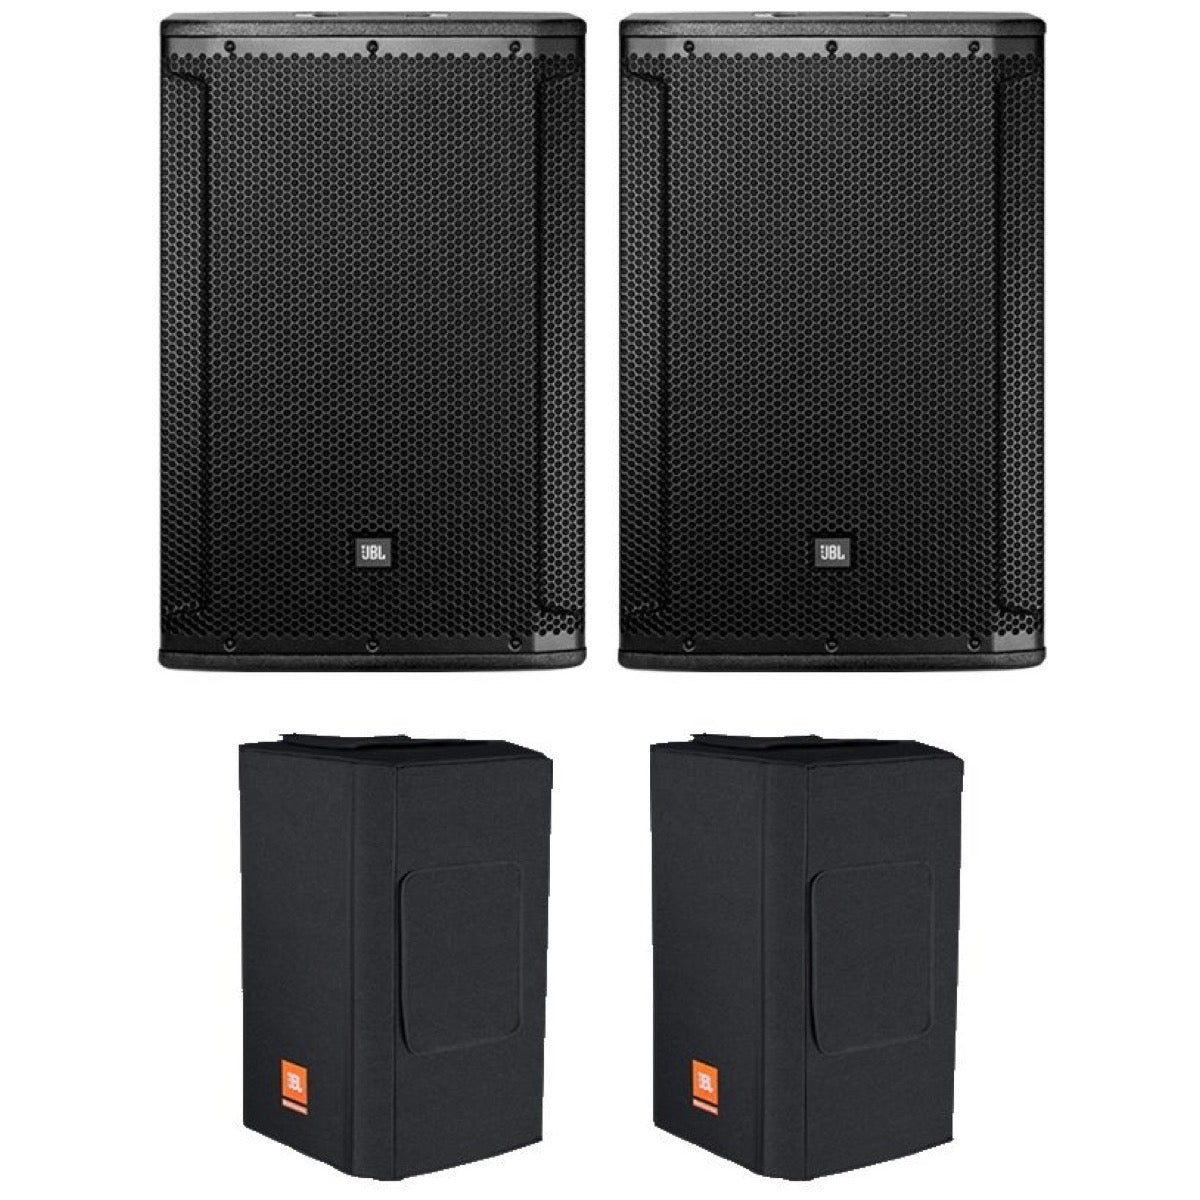 JBL SRX815P Powered Loudspeaker, Pair, with JBL SRX815PCVRDLX Padded Covers